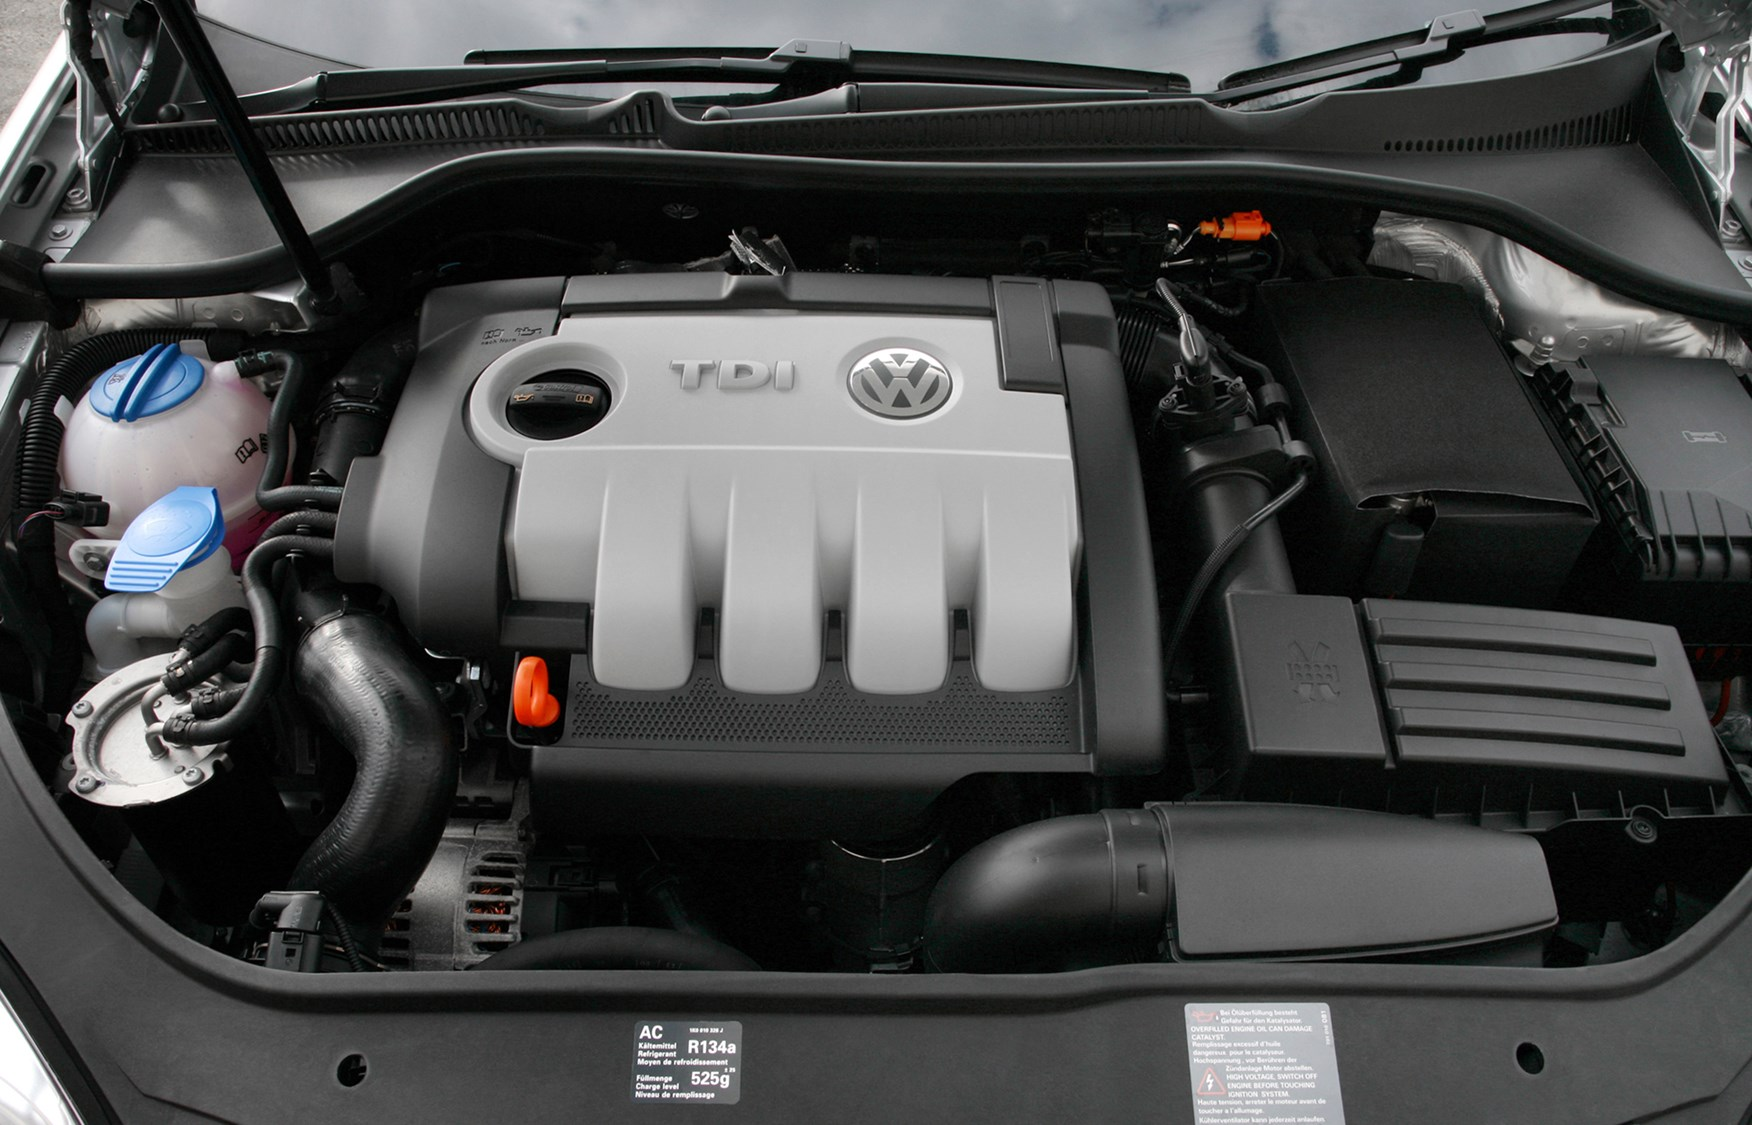 Used Volkswagen Golf Hatchback (2004 - 2008) Engines | Parkers